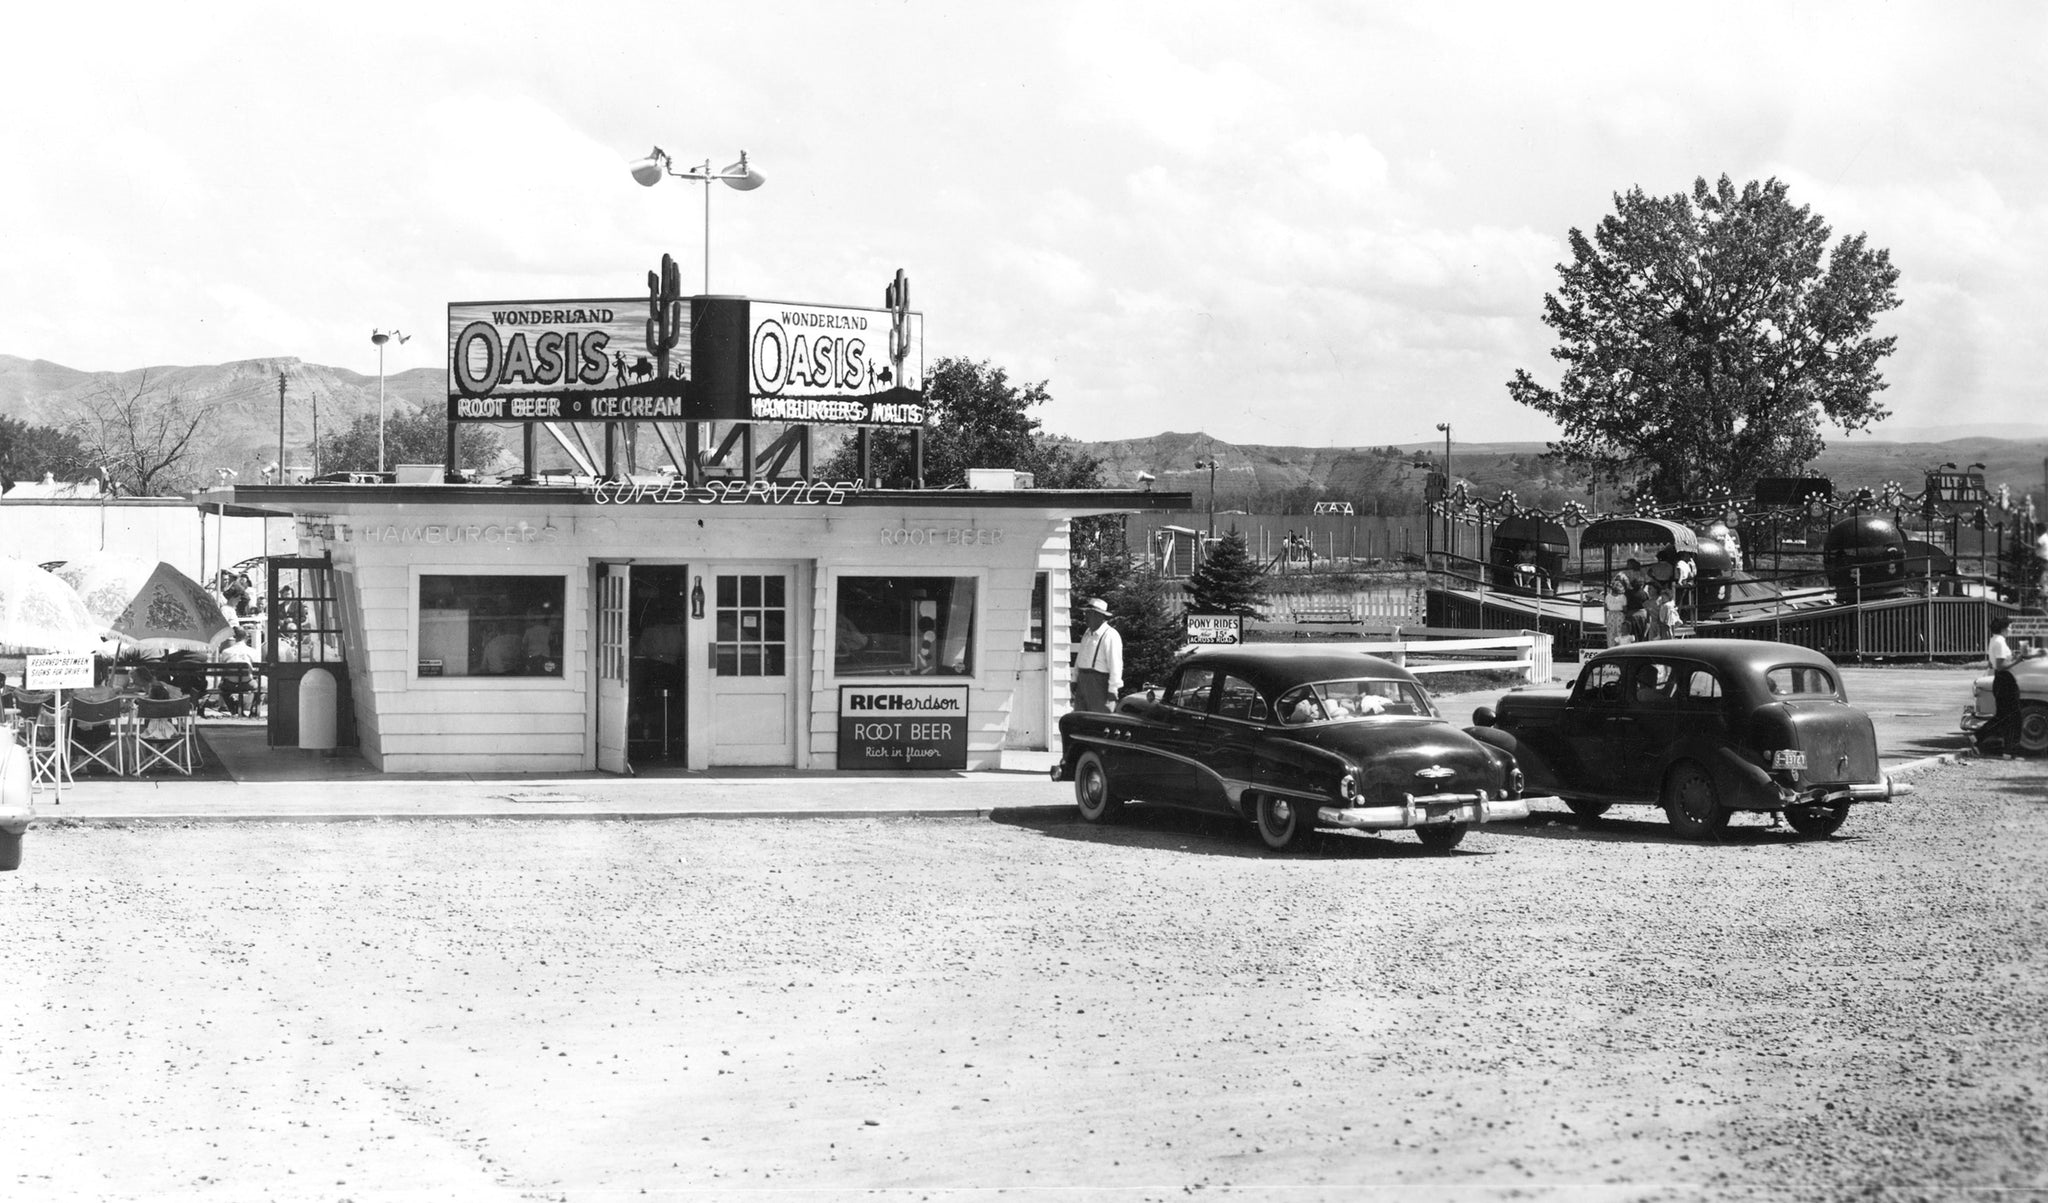 The Oasis drive-in cafe at Wonderland amusement park, 1950s. It served hamburgers, malts, ice cream, and root beer. -- Jim Reich